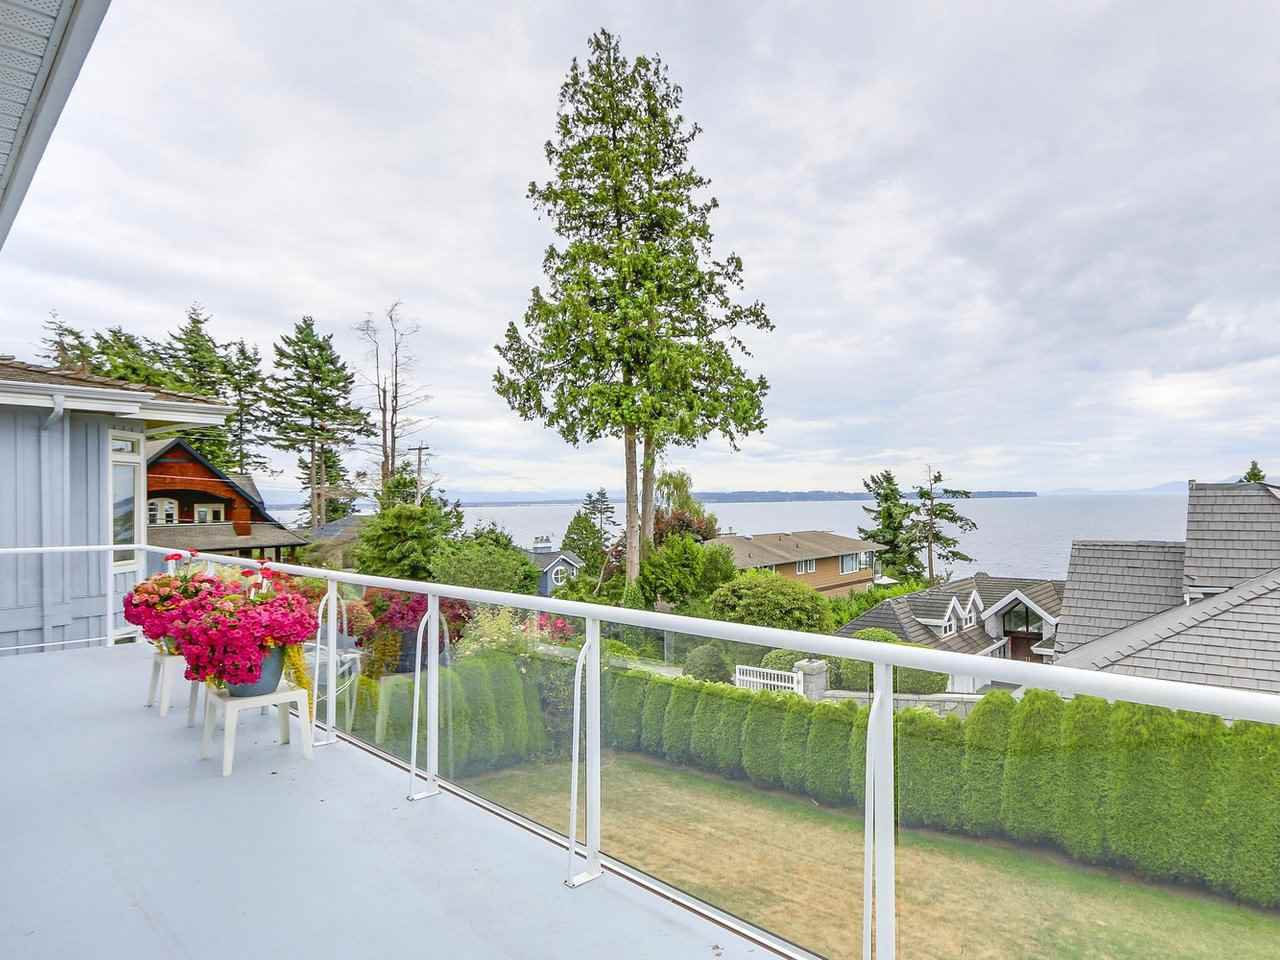 Photo 8: Photos: 1325 132B Street in Surrey: Crescent Bch Ocean Pk. House for sale (South Surrey White Rock)  : MLS®# R2185643